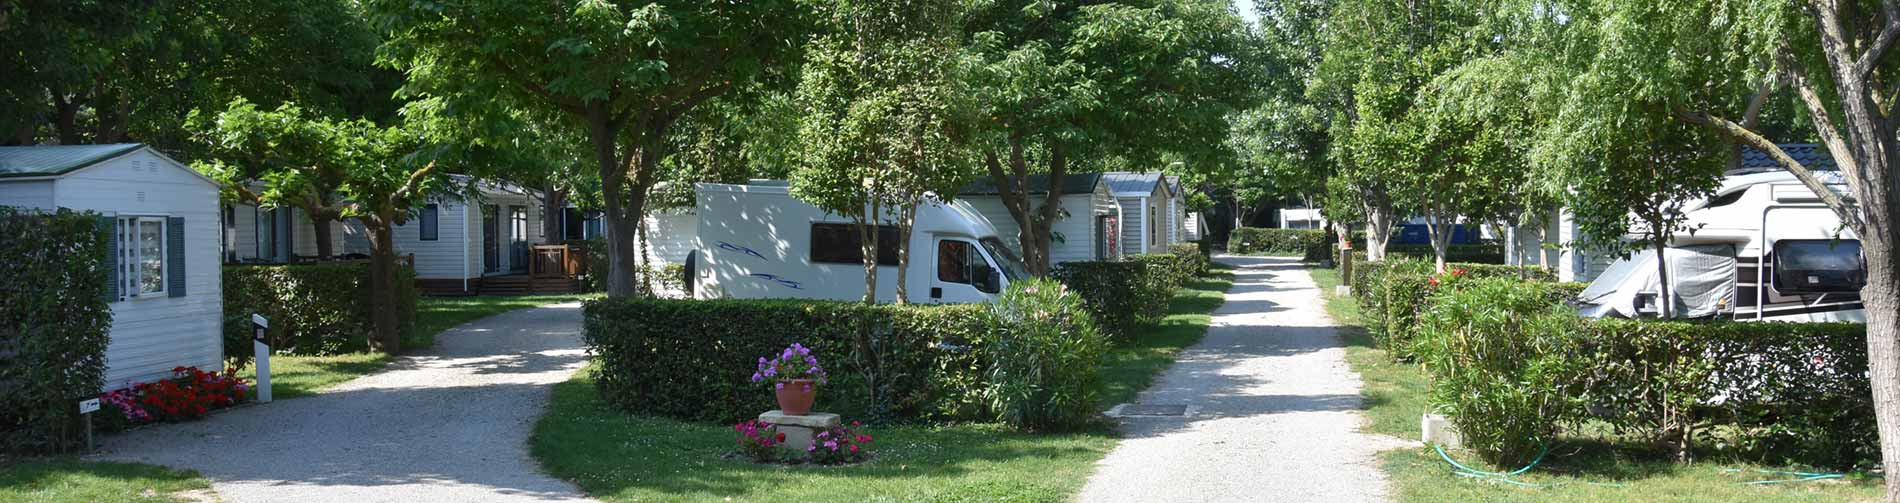 Allée du camping Saint-Gabriel : location mobile home paca